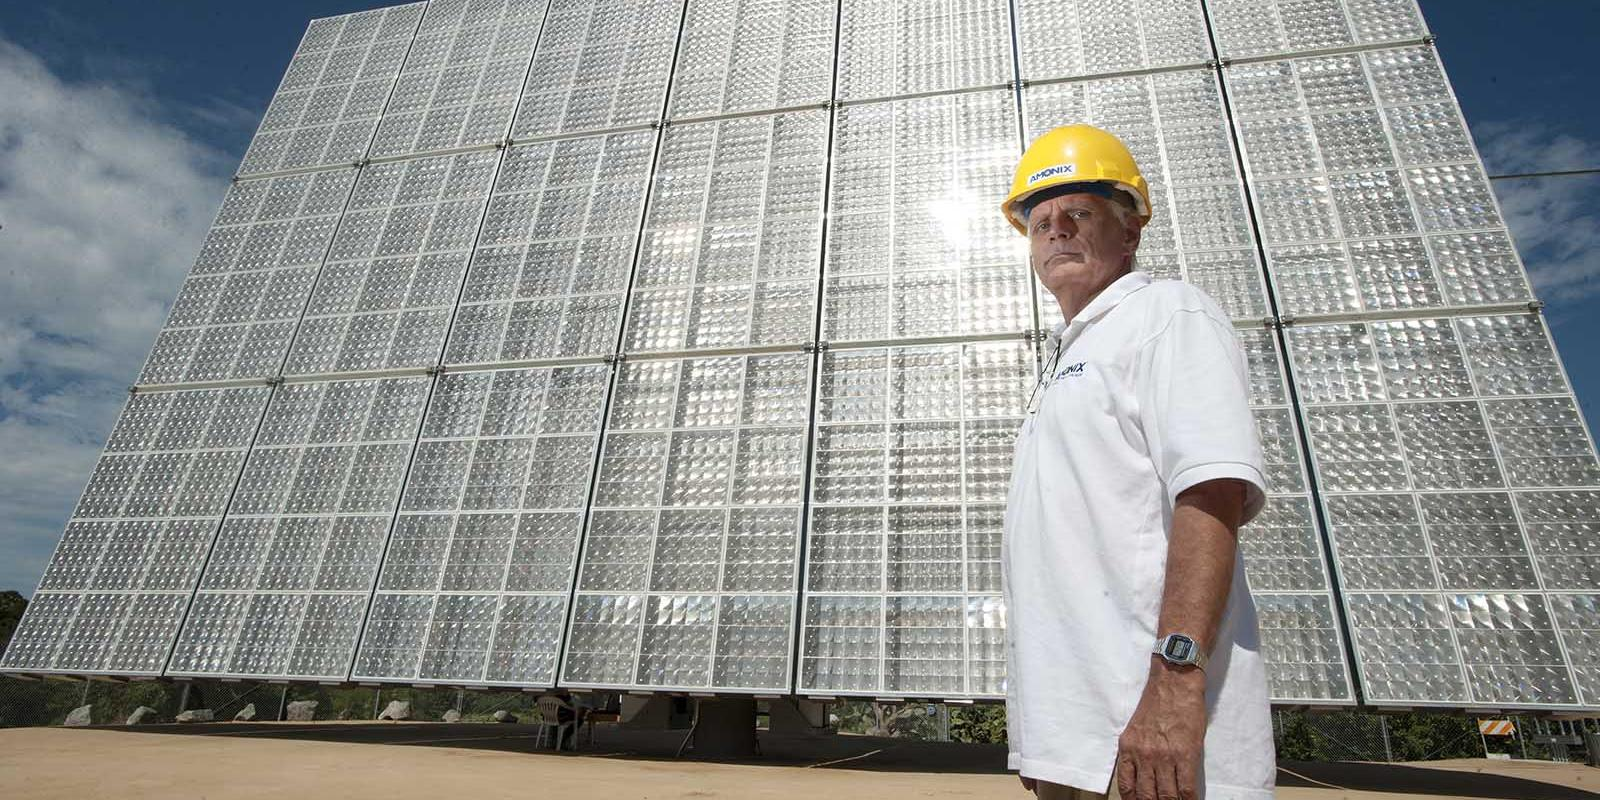 Jim Schwerin, principal electrical engineer stands with Amonix solar panels at the Lyle Center, August 2010